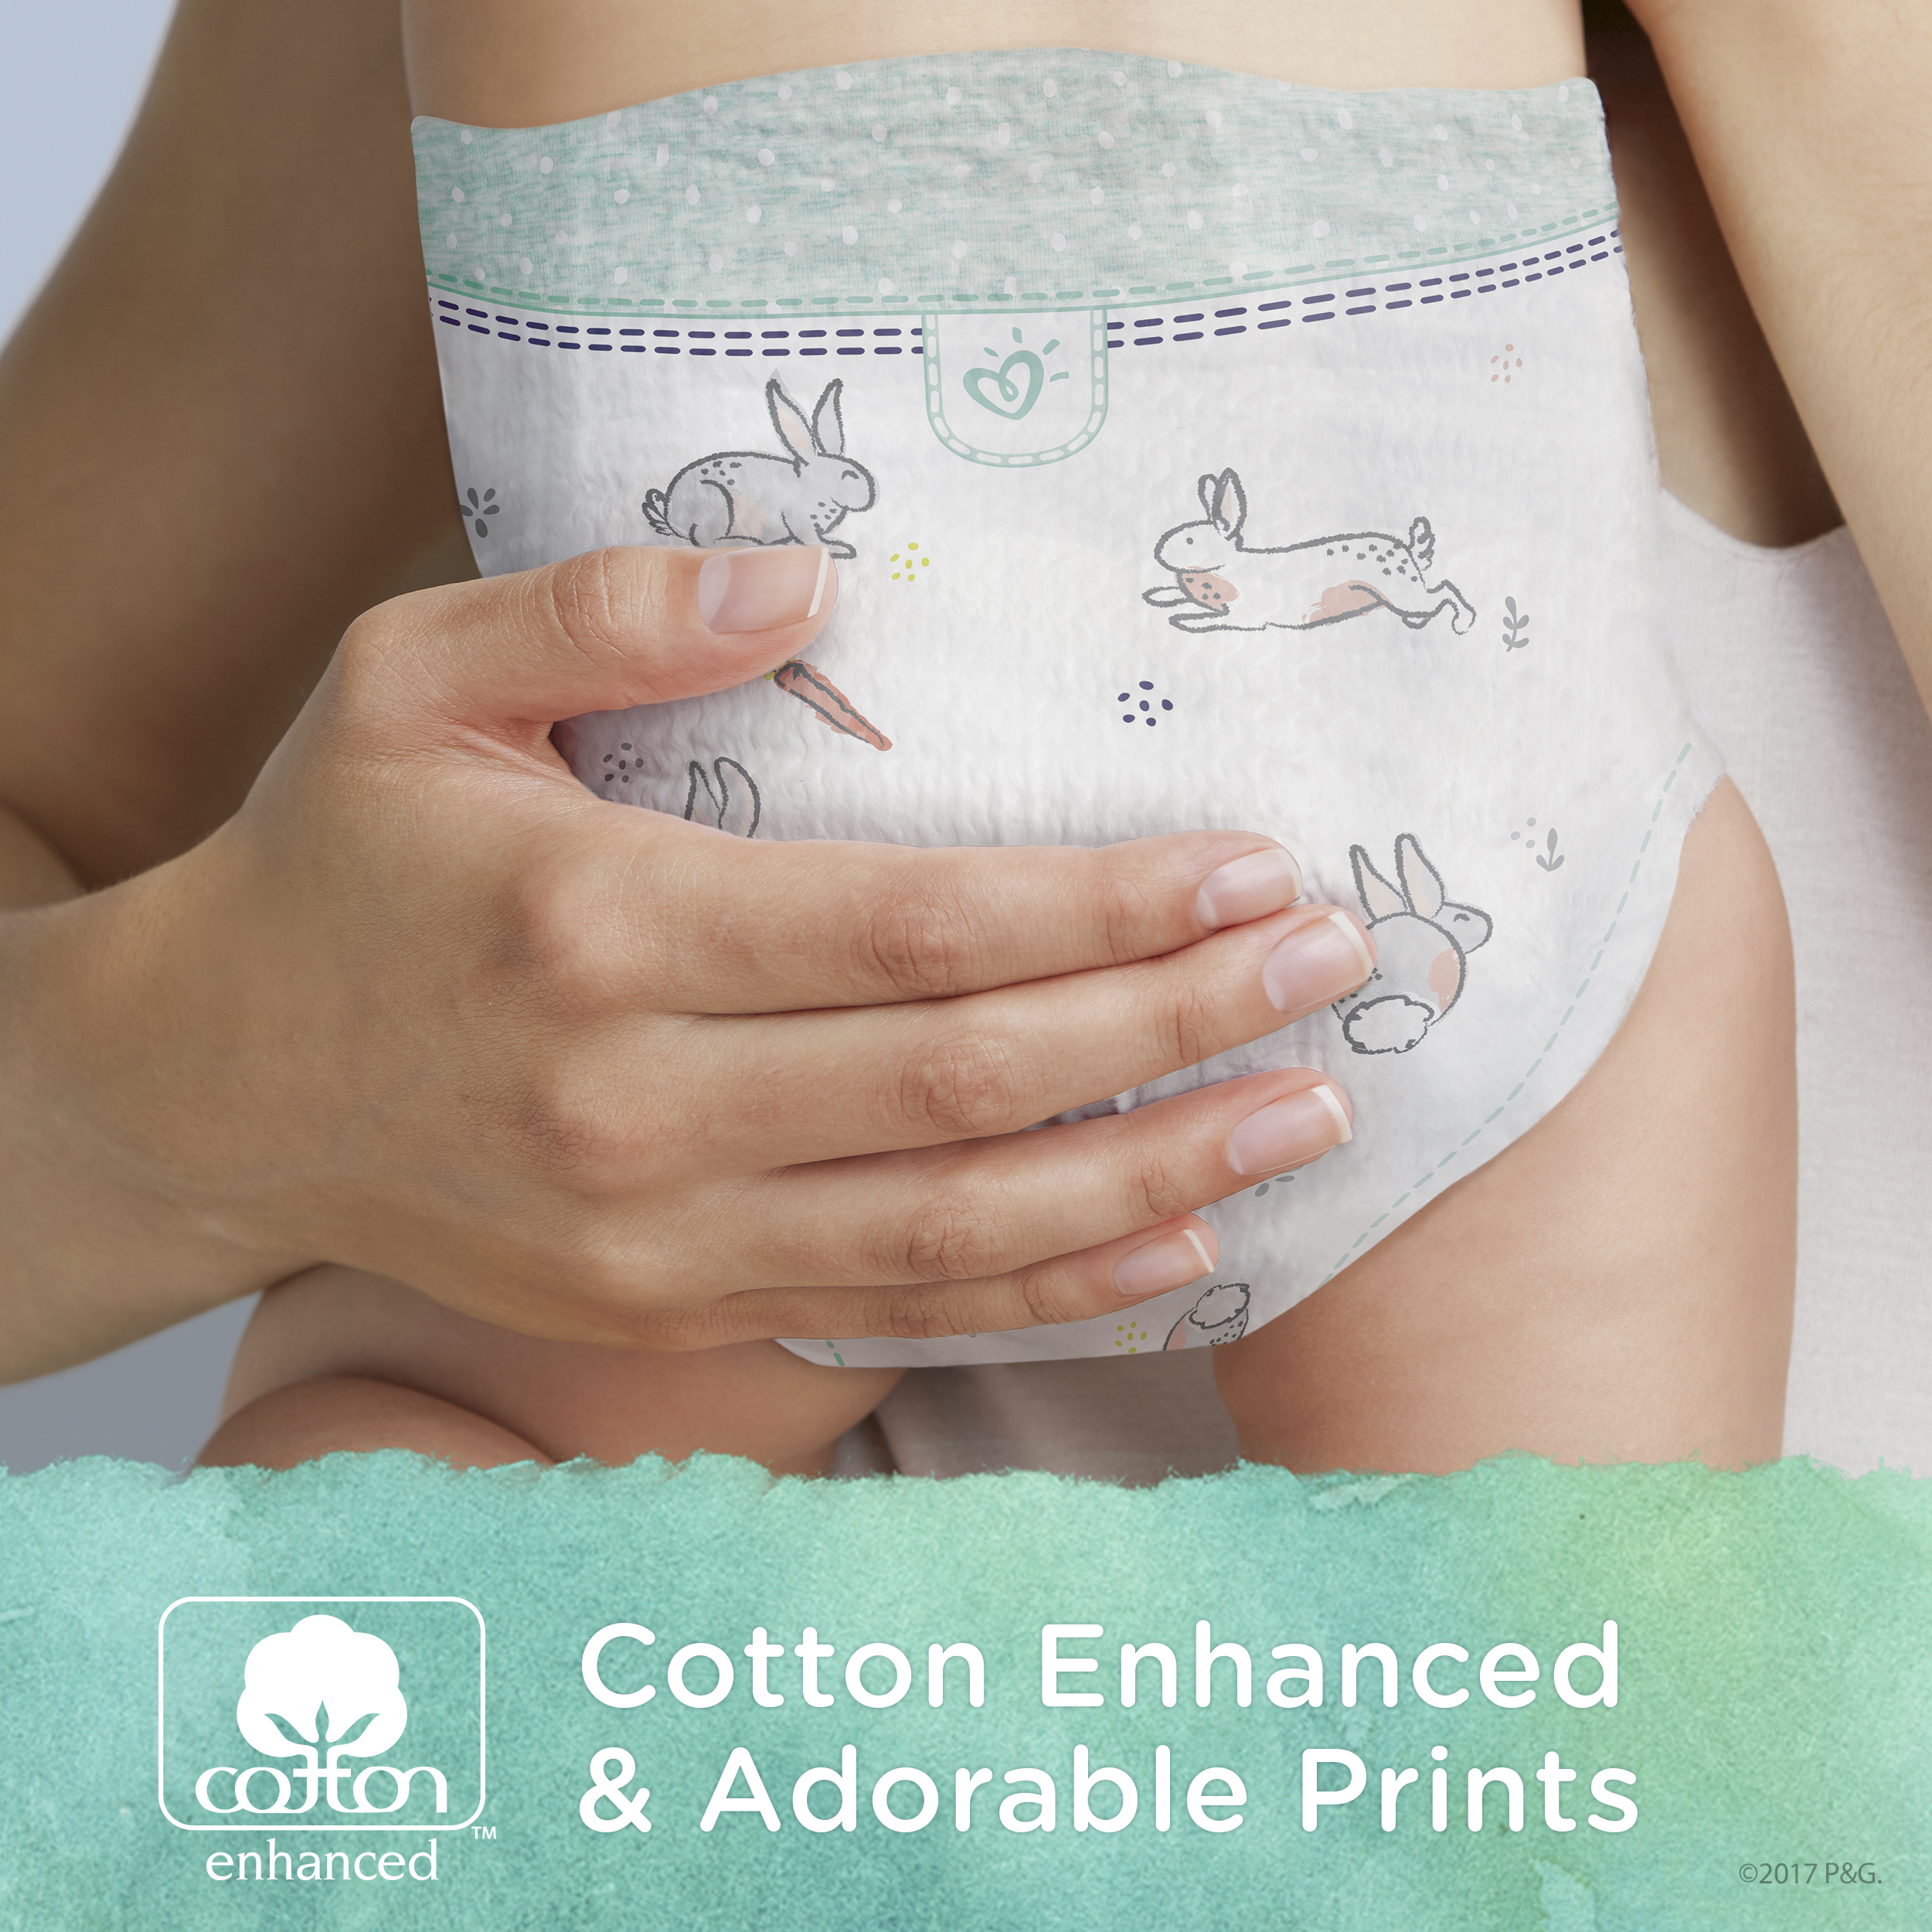 Cotton Enhanced and Adorable Prints